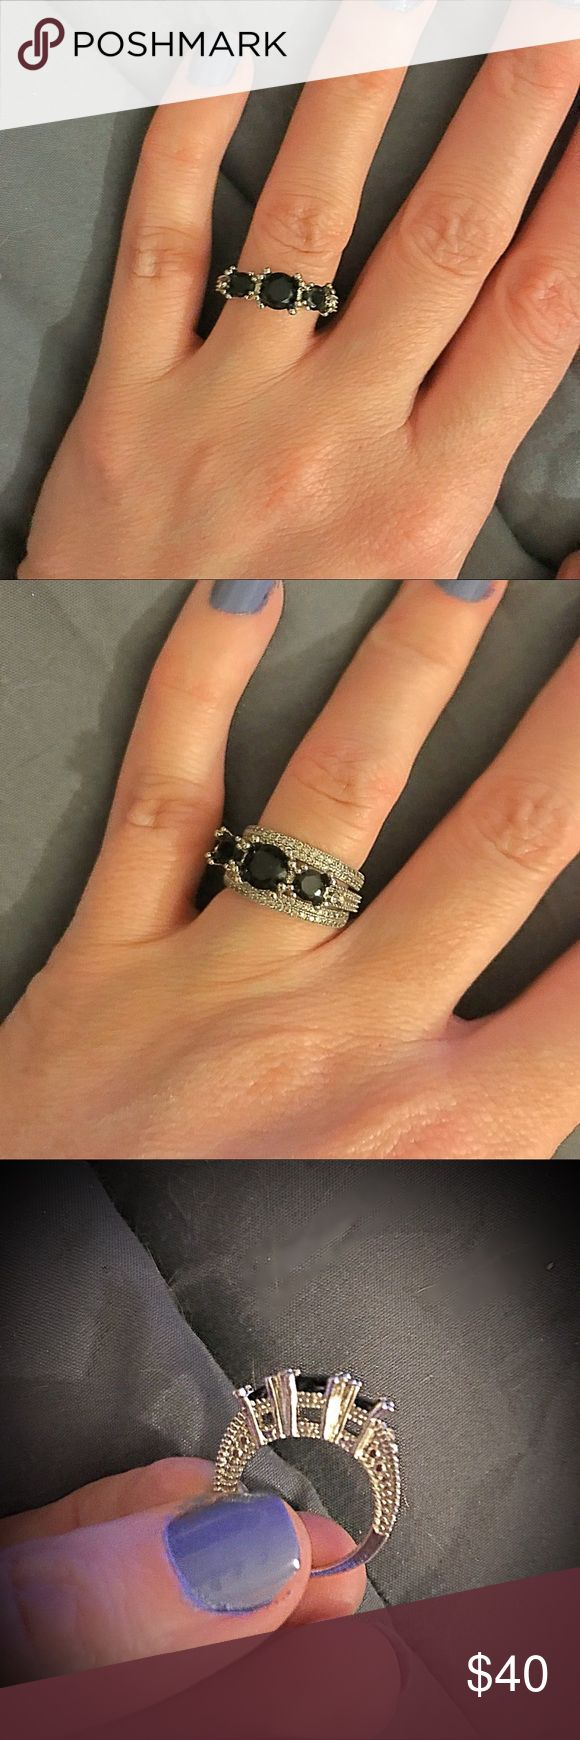 Black Sapphire .925 Ring Beautiful! Never worn! Great alternative if you don't like diamonds! Looks great! I ♥️offers!!! Size 5. Added wedding bands in one pic to show what it looks like with bands (they are not included!) Jewelry Rings #jewelrydiamond